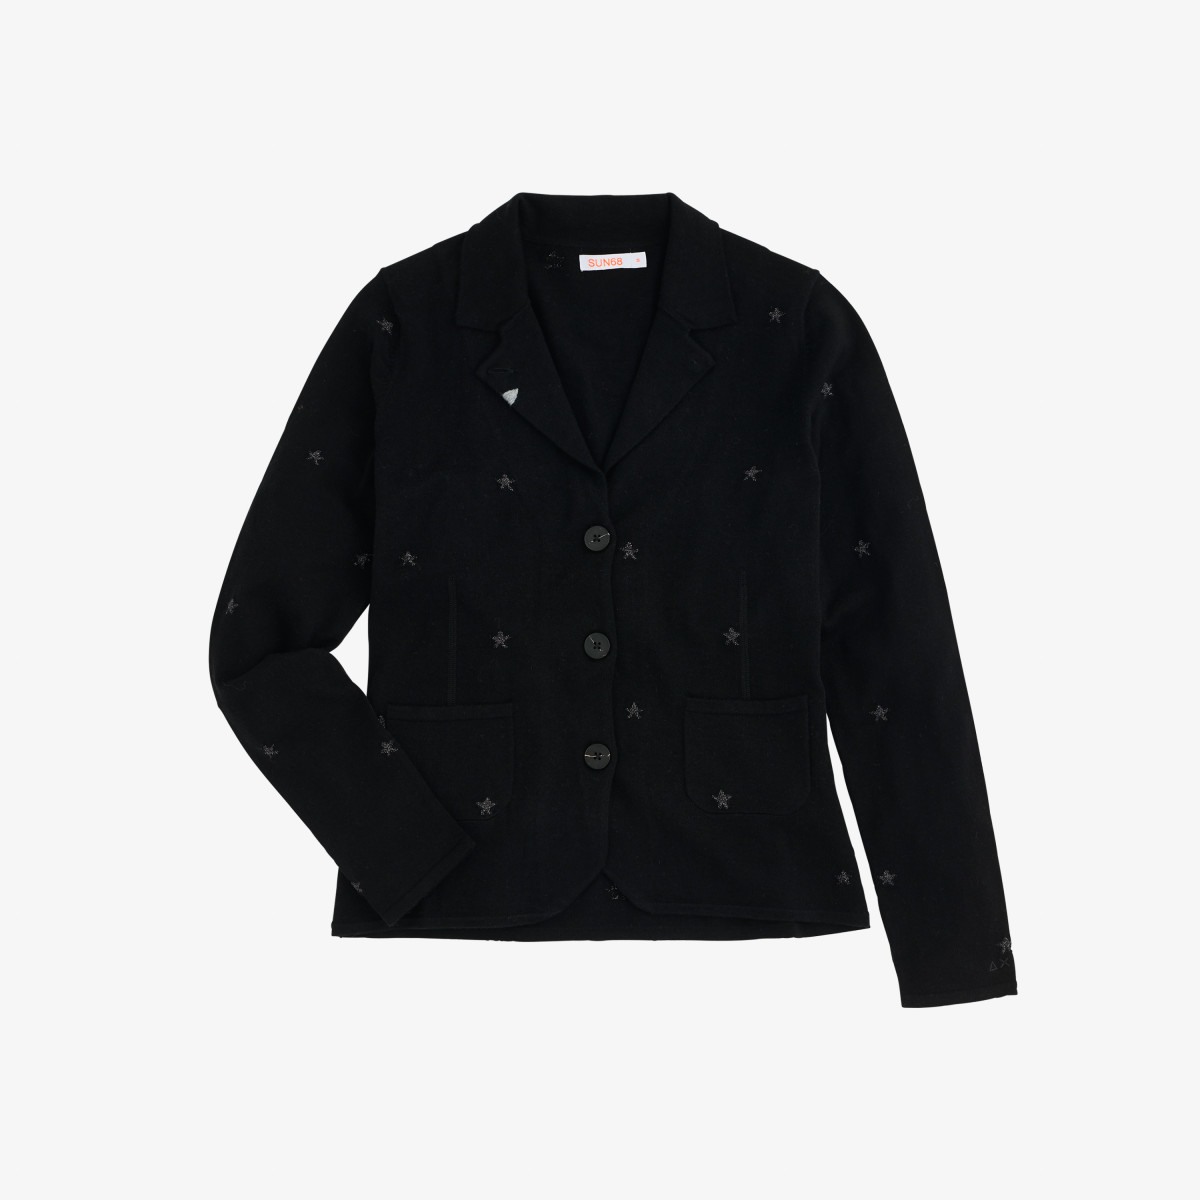 JACKET JACQUARD L/S BLACK